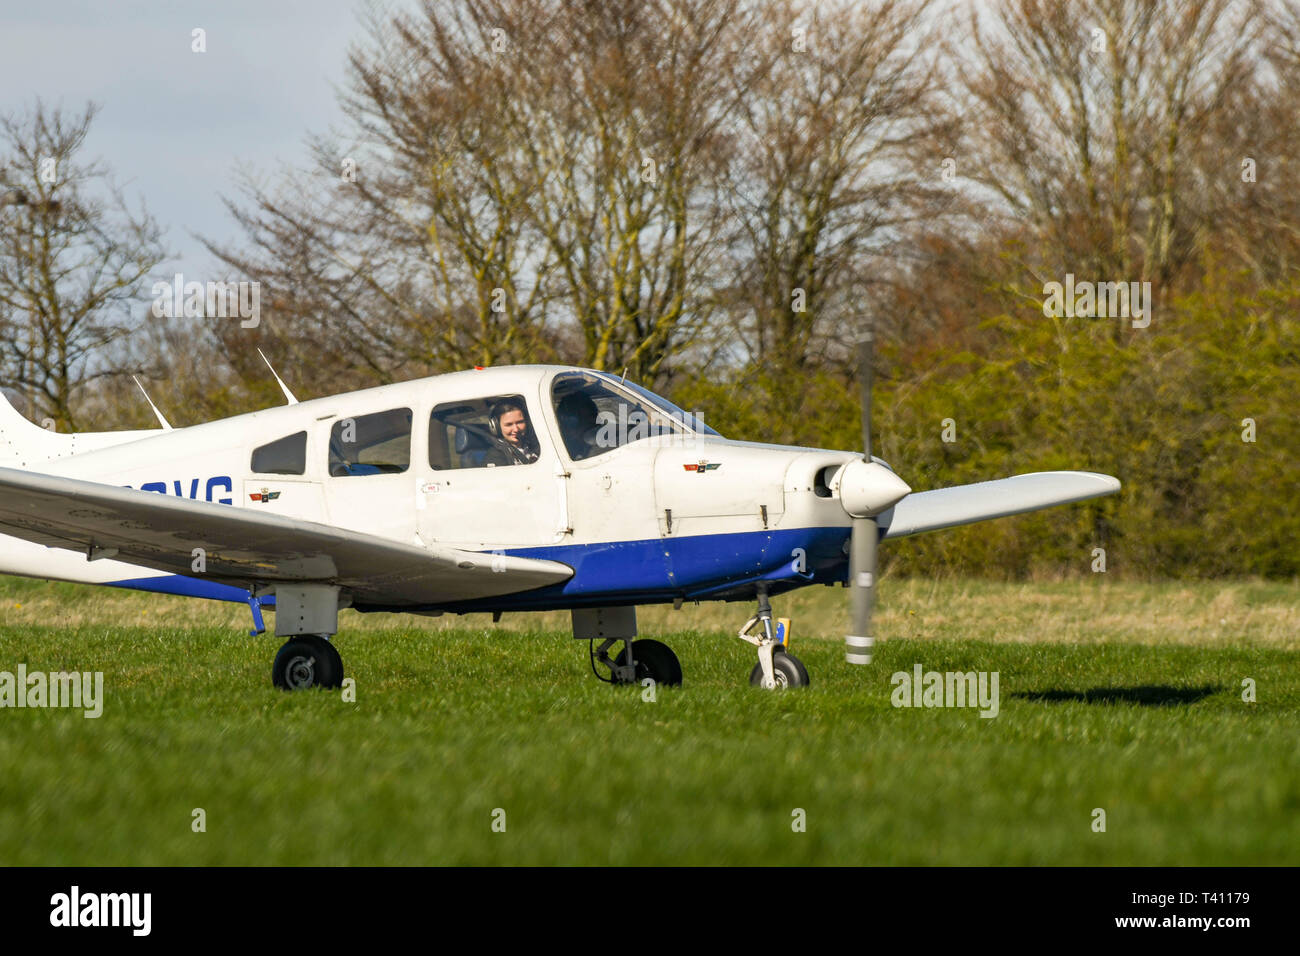 HIGH WYCOMBE, ENGLAND - MARCH 2019: Piper Warrior light trainer aircraft taxiing after landing at Wycombe Air Park. - Stock Image